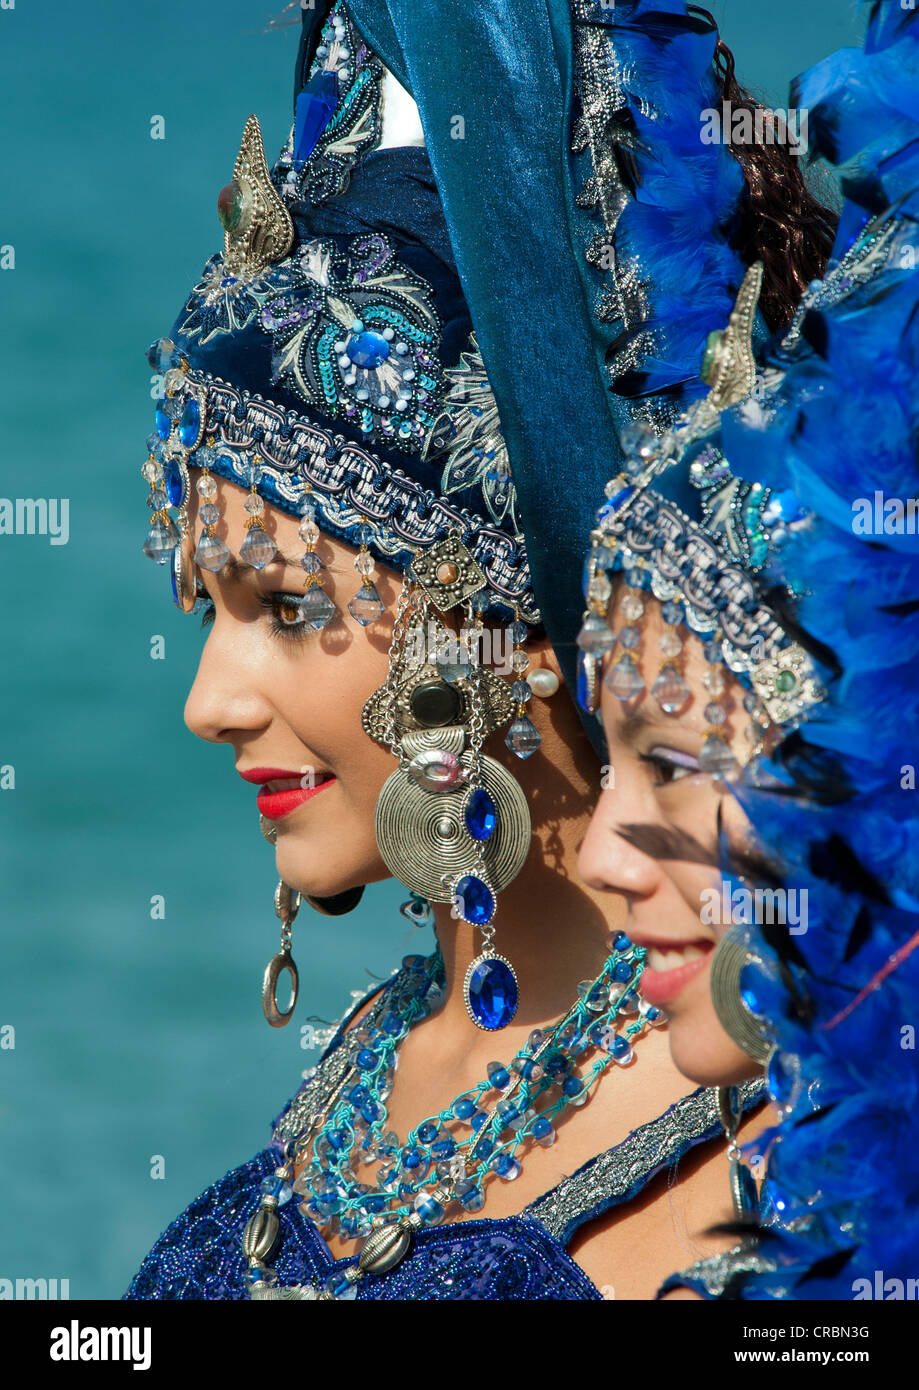 Women in Traditional Moors Costume at the Moors and Christians Fiesta in Mojacar, Almeria, Andalusia, Spain Stock Photo